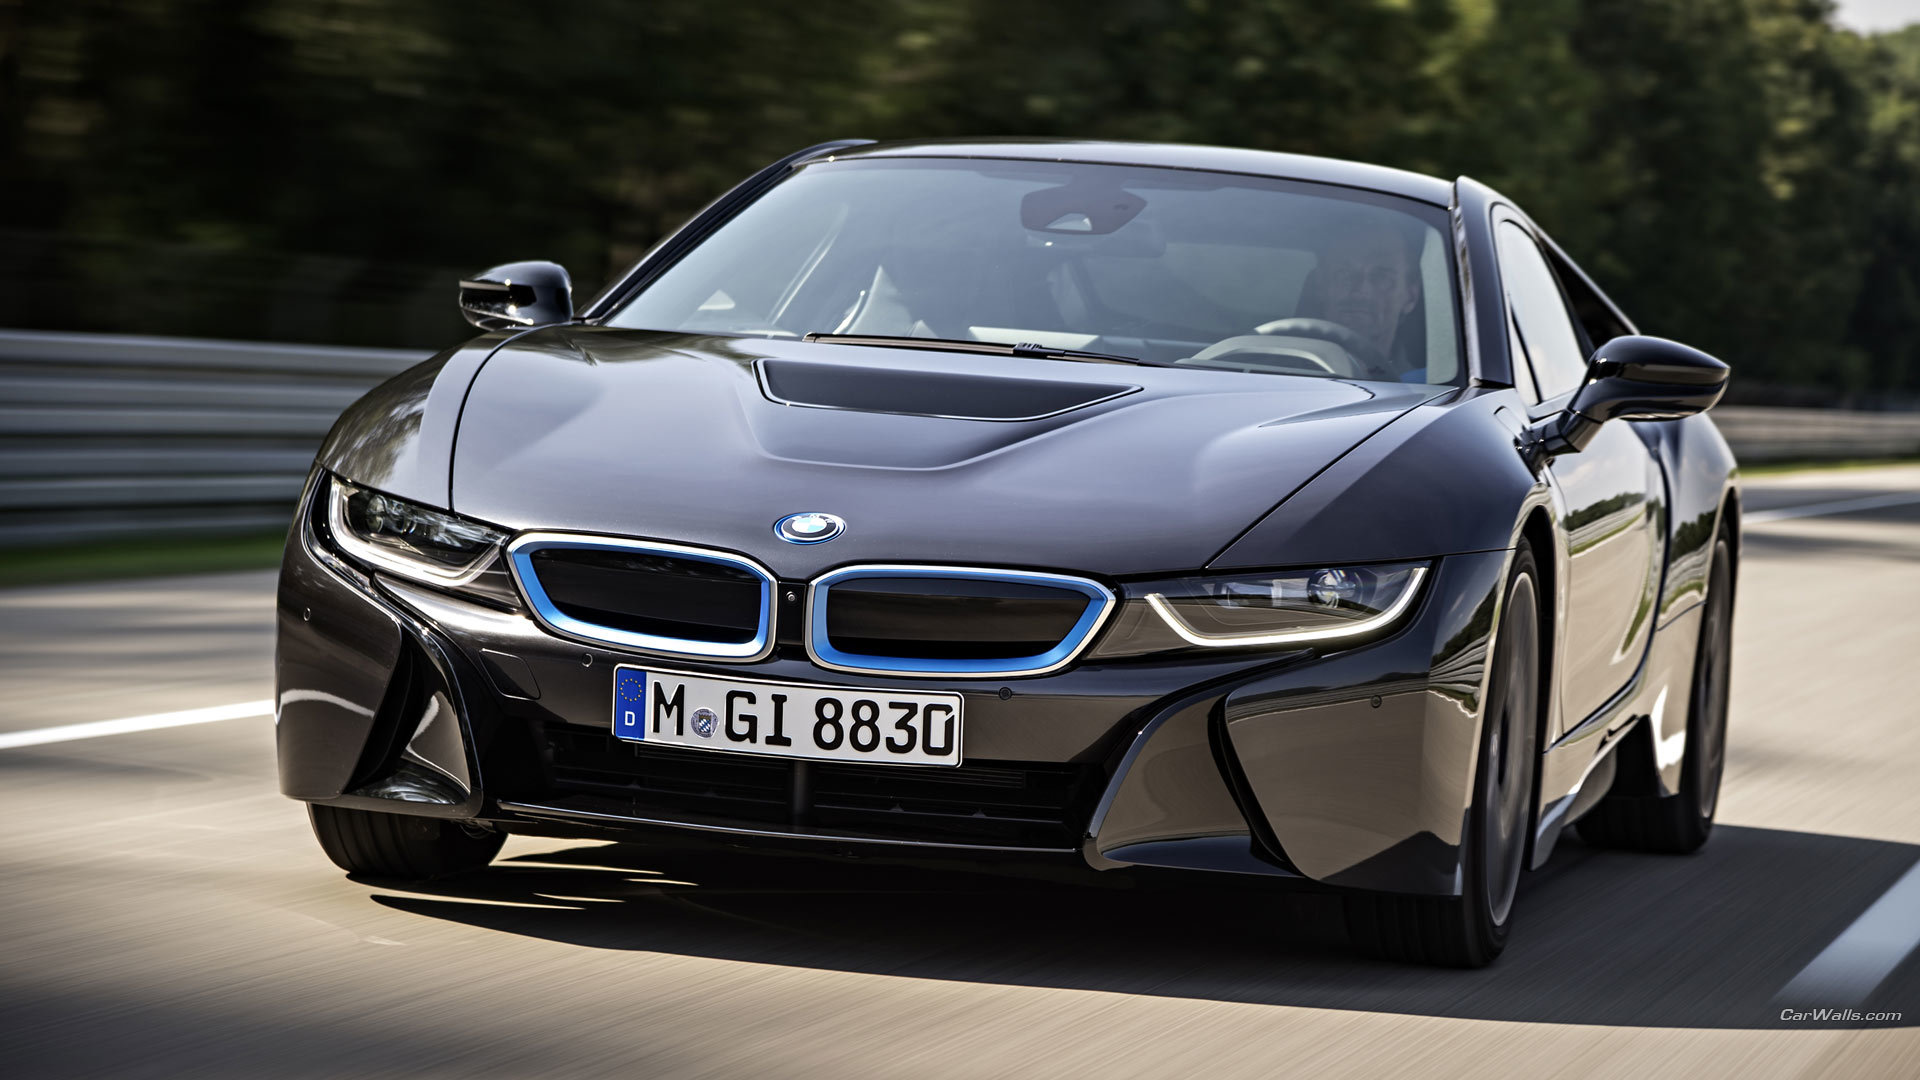 Best Bmw I8 Wallpaper Id 126936 For High Resolution Full Hd 1080p